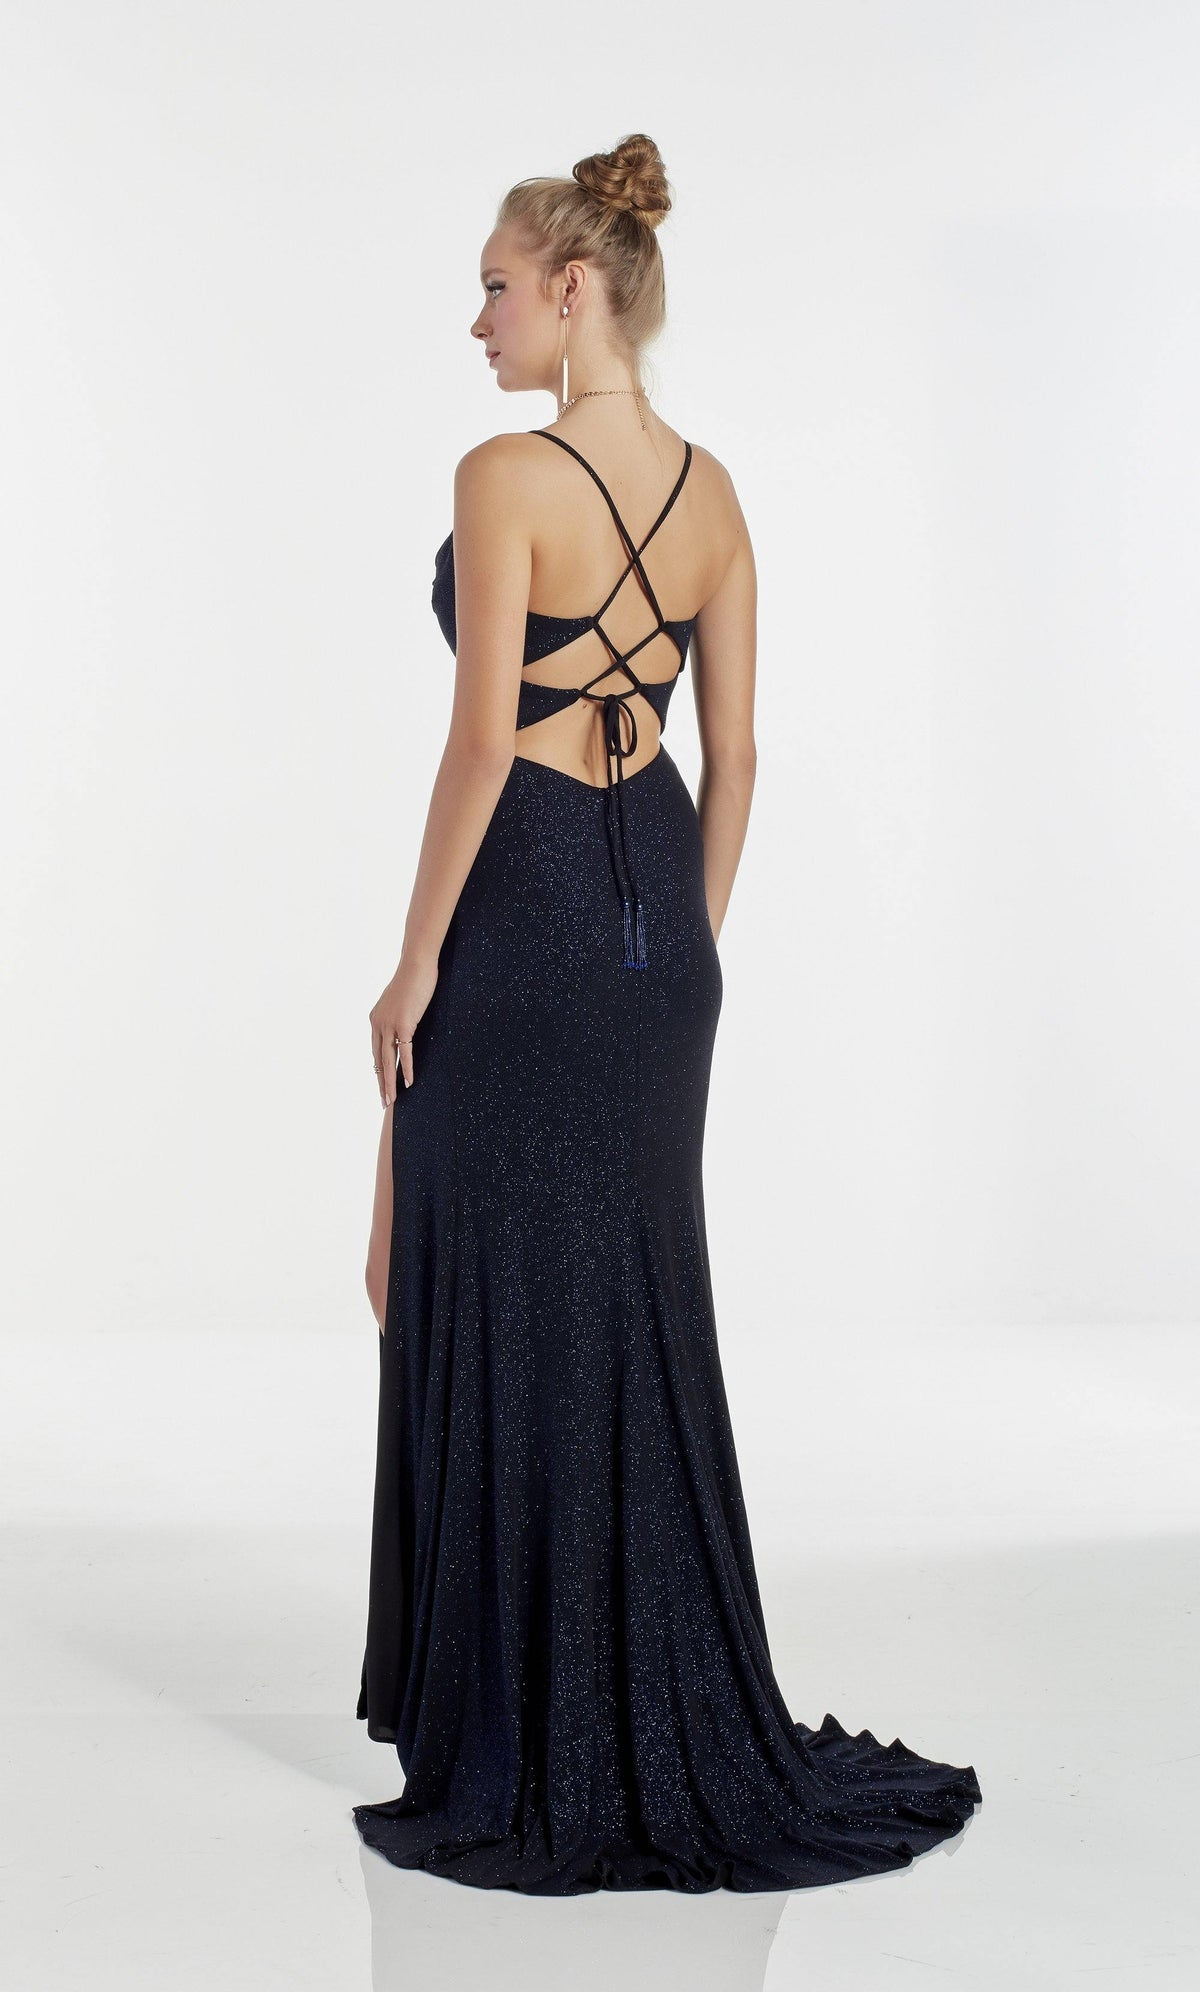 Cobalt Blue sparkle jersey evening dress with a strappy back and train